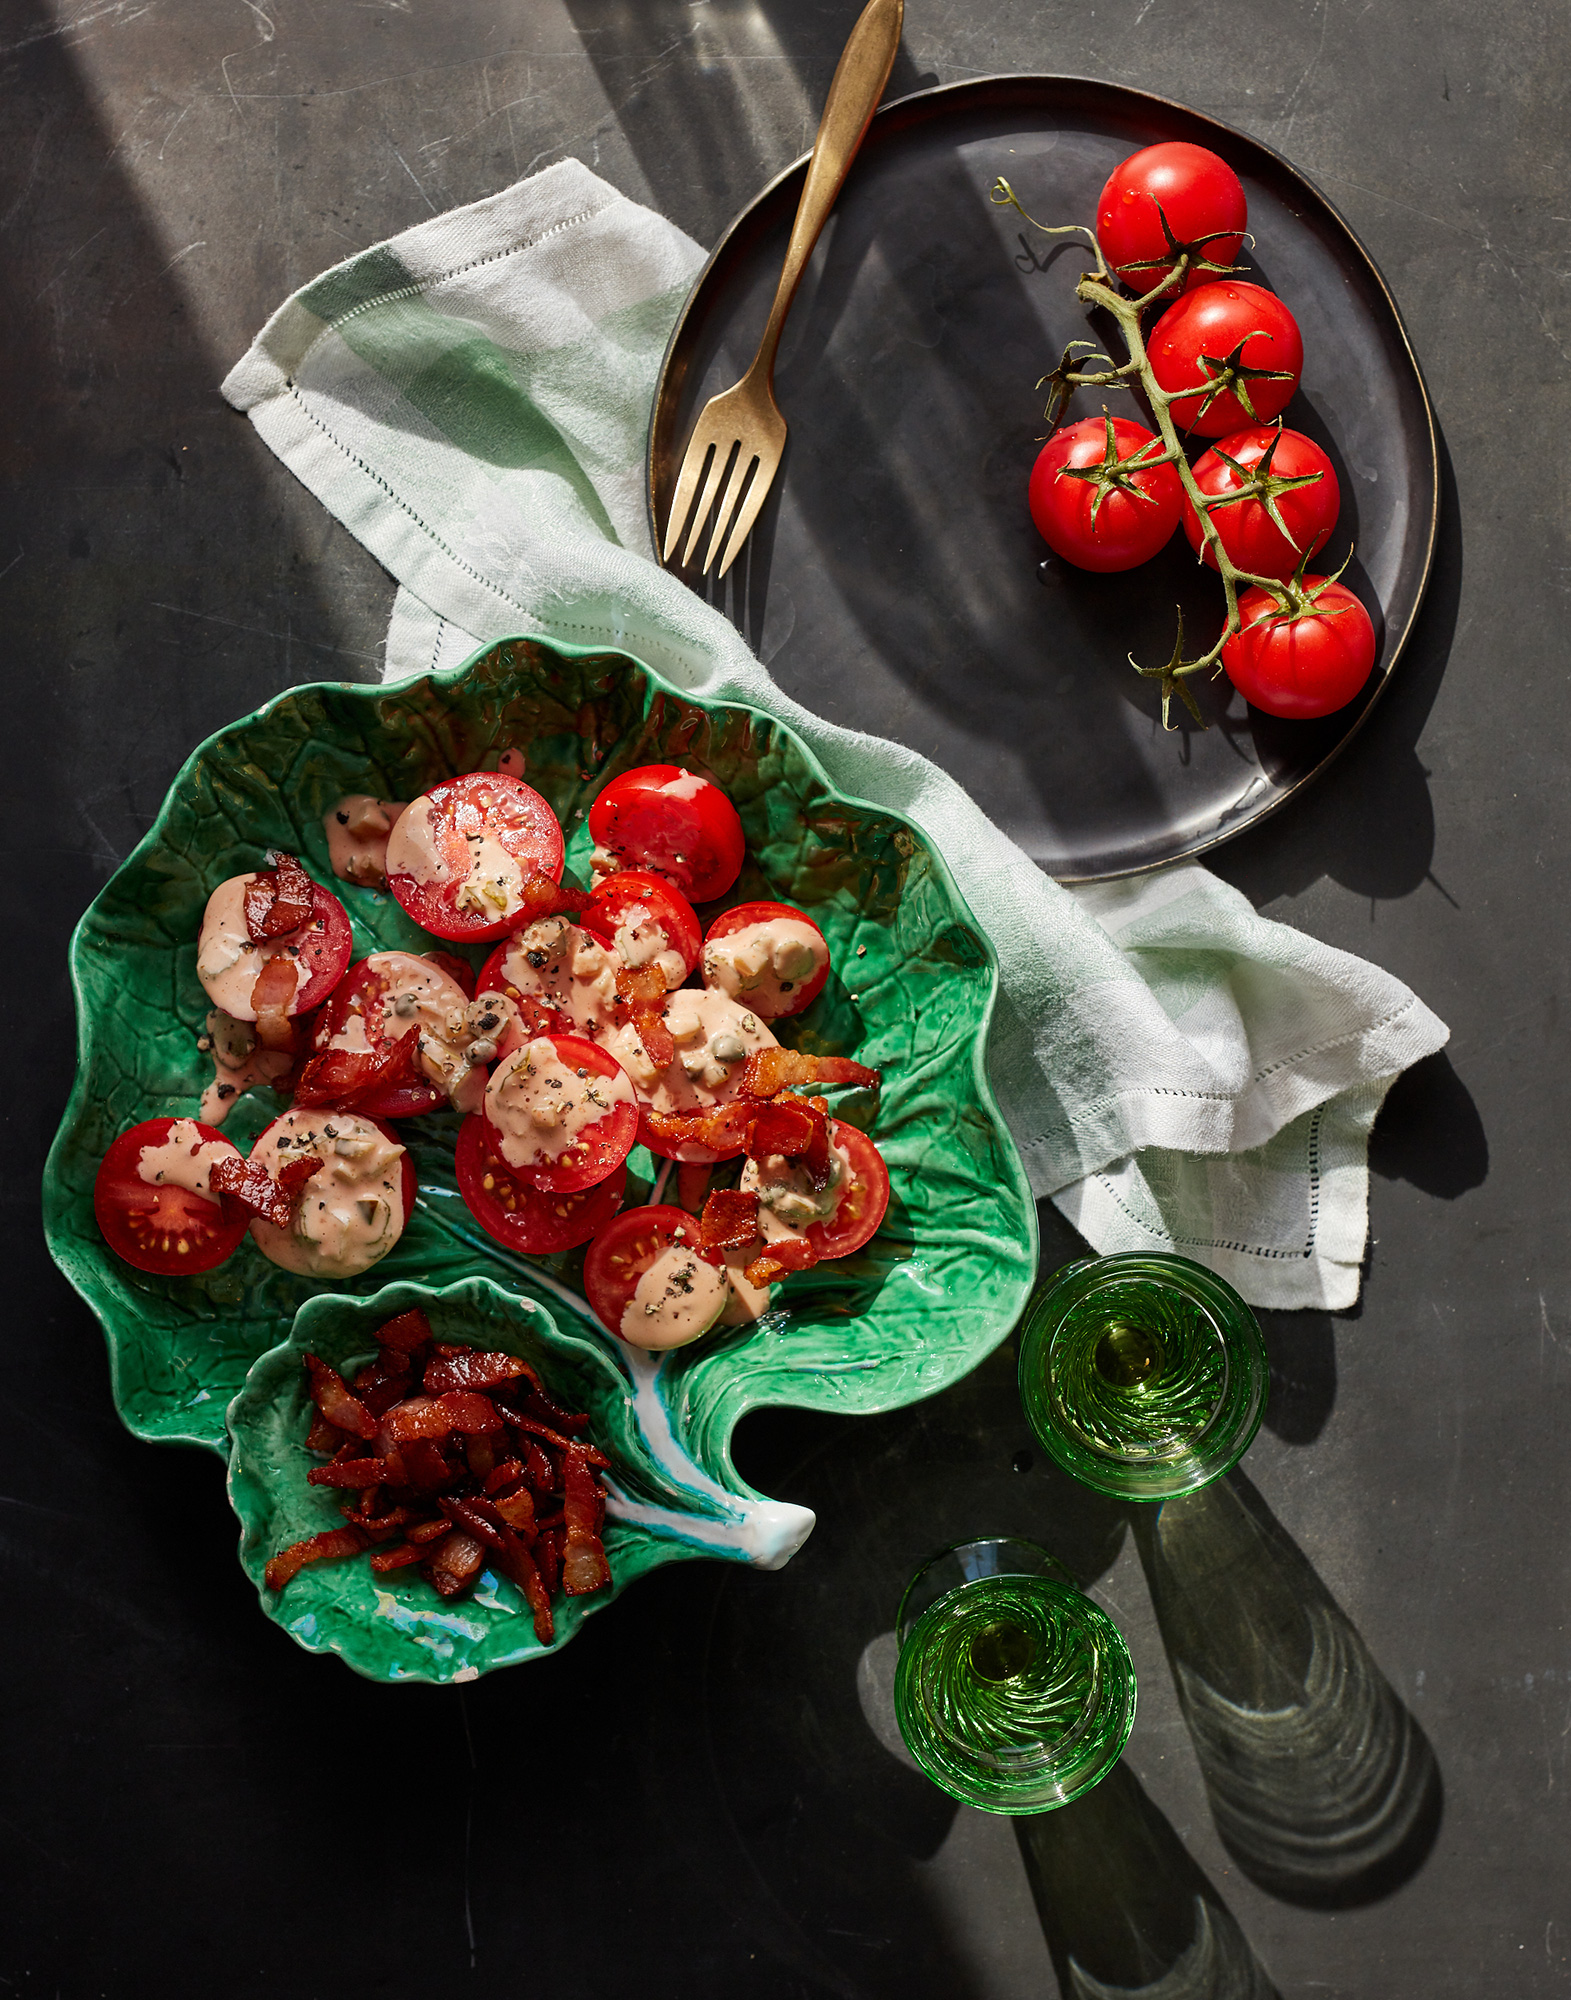 38_Thousand_Island_Bacon_Tomato_Salad_J_Miller_0803